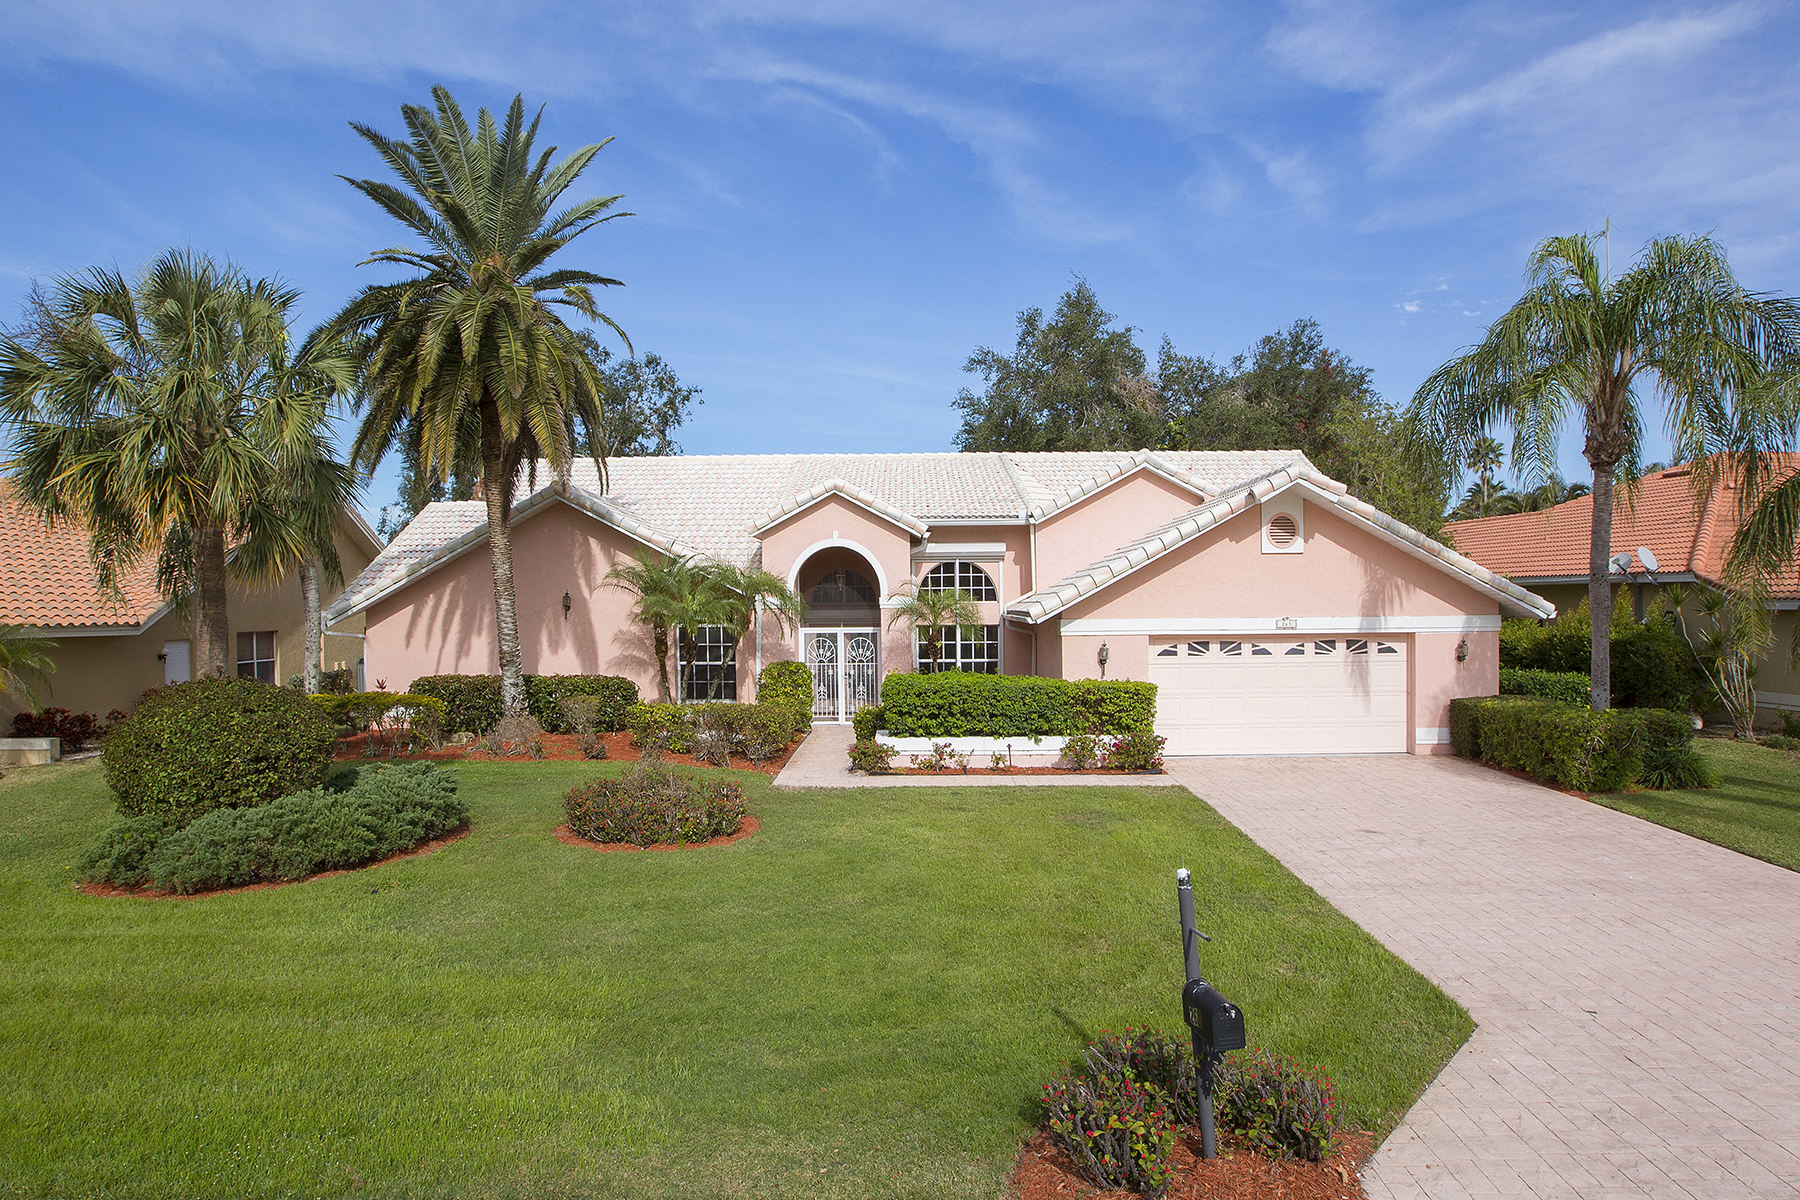 واحد منزل الأسرة للـ Sale في Naples 263 Henley Dr, Naples, Florida, 34104 United States